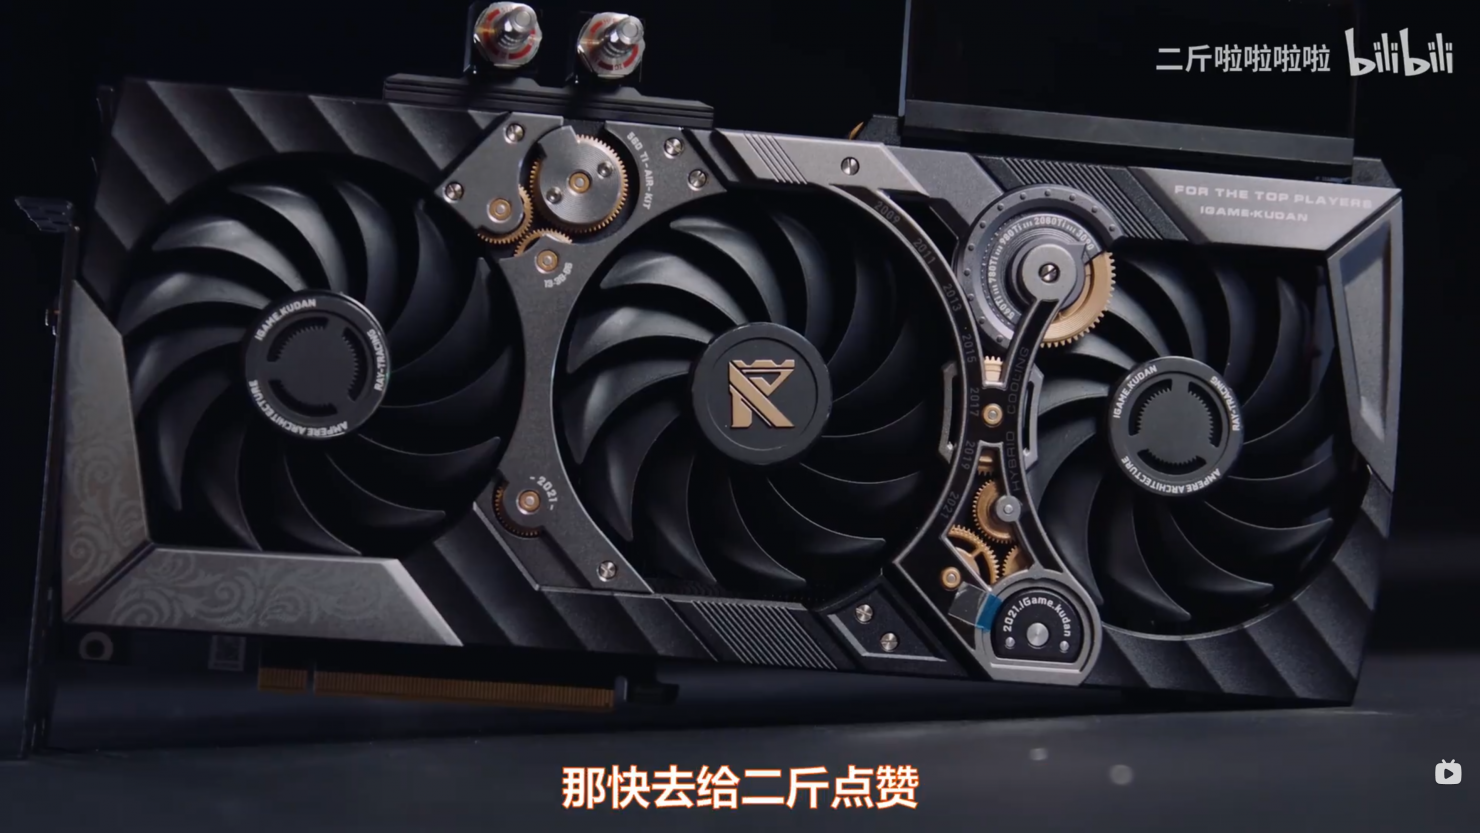 colorful-igame-geforce-rtx-3090-kudan-graphics-card-disassembled,-26-phase-pcb-design-&-insane-cooling-system-revealed